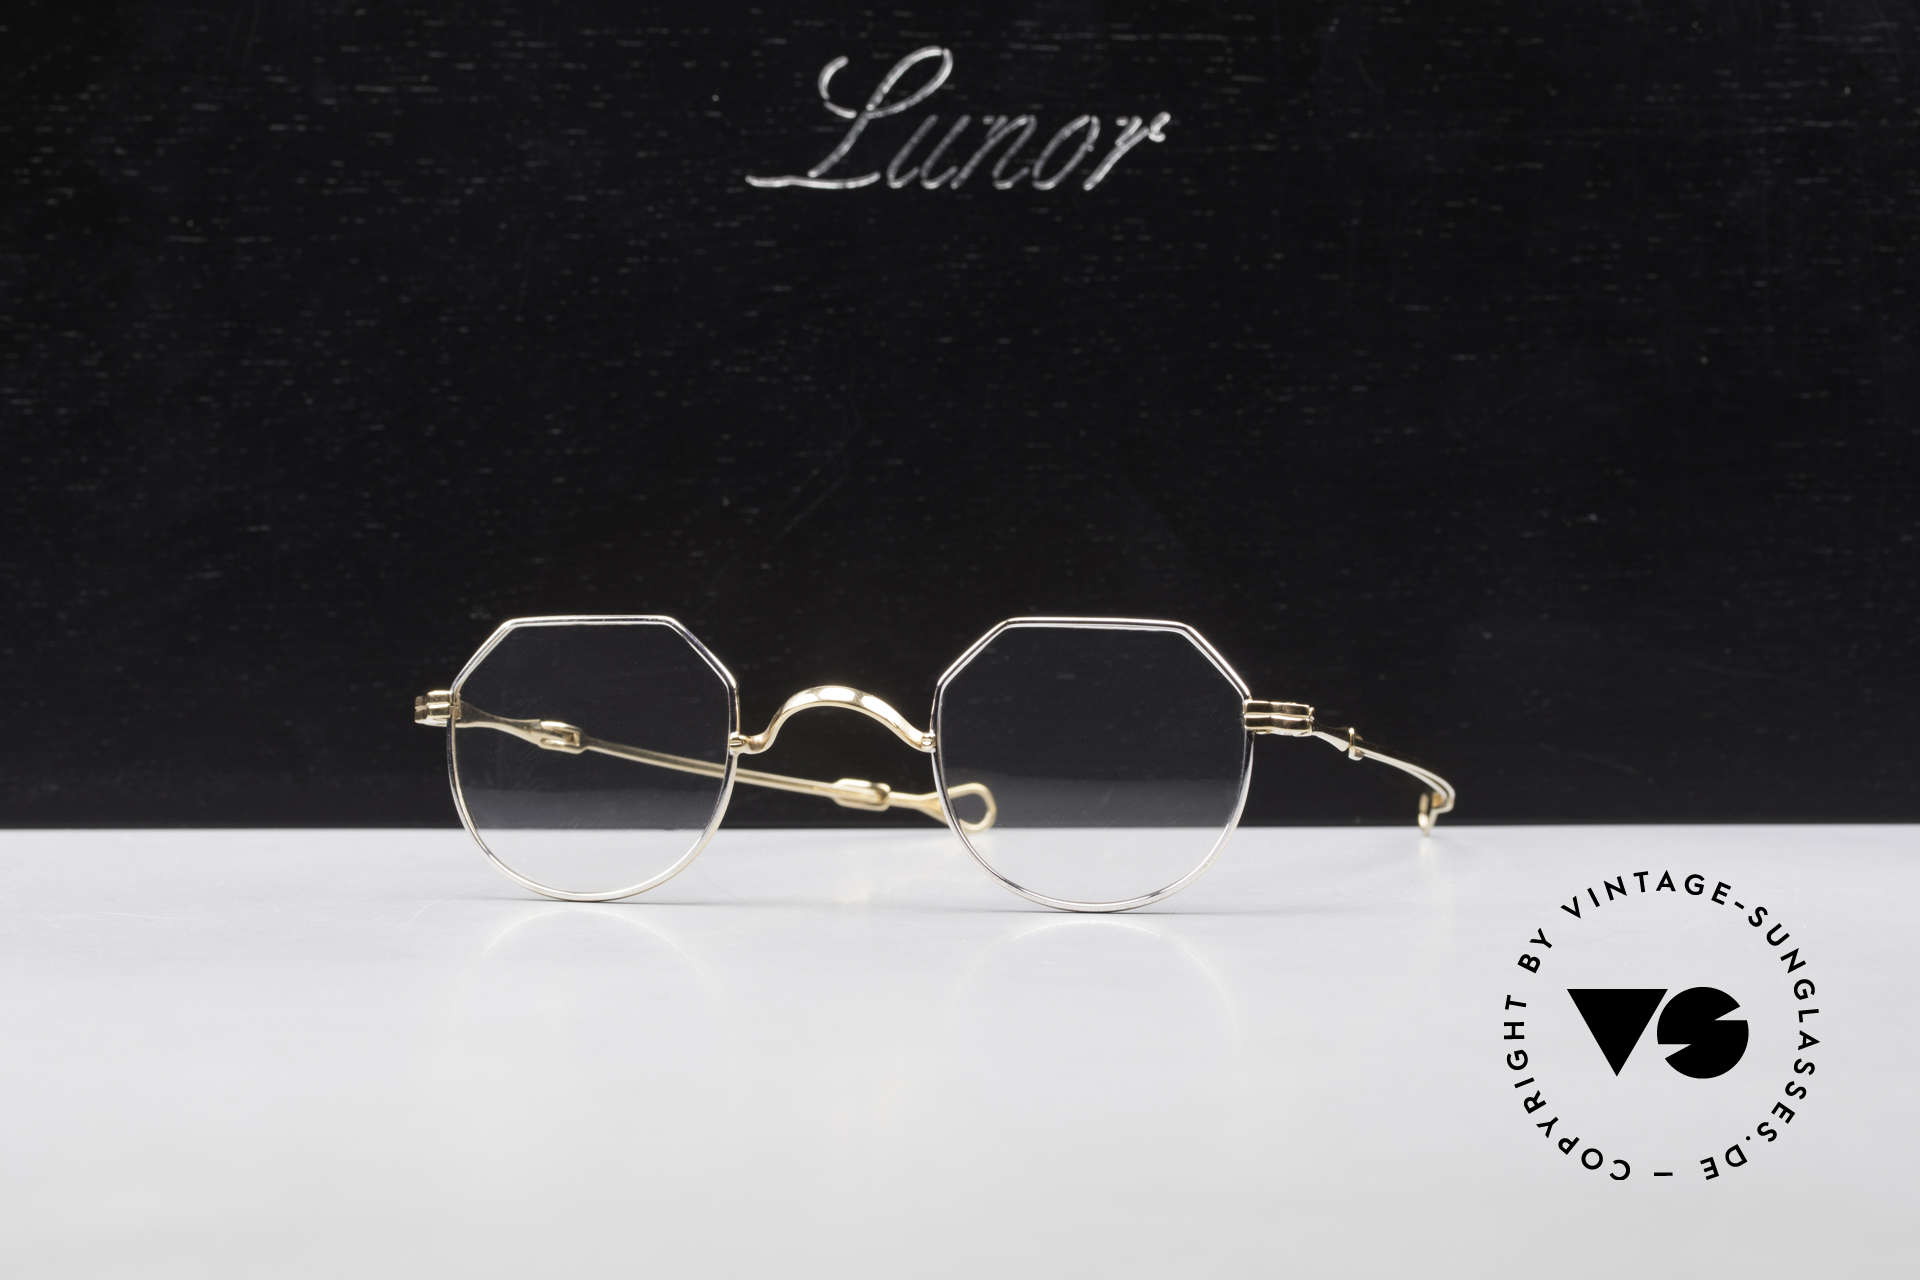 Lunor I 18 Telescopic Glasses With Telescopic Arms, Size: extra small, Made for Men and Women